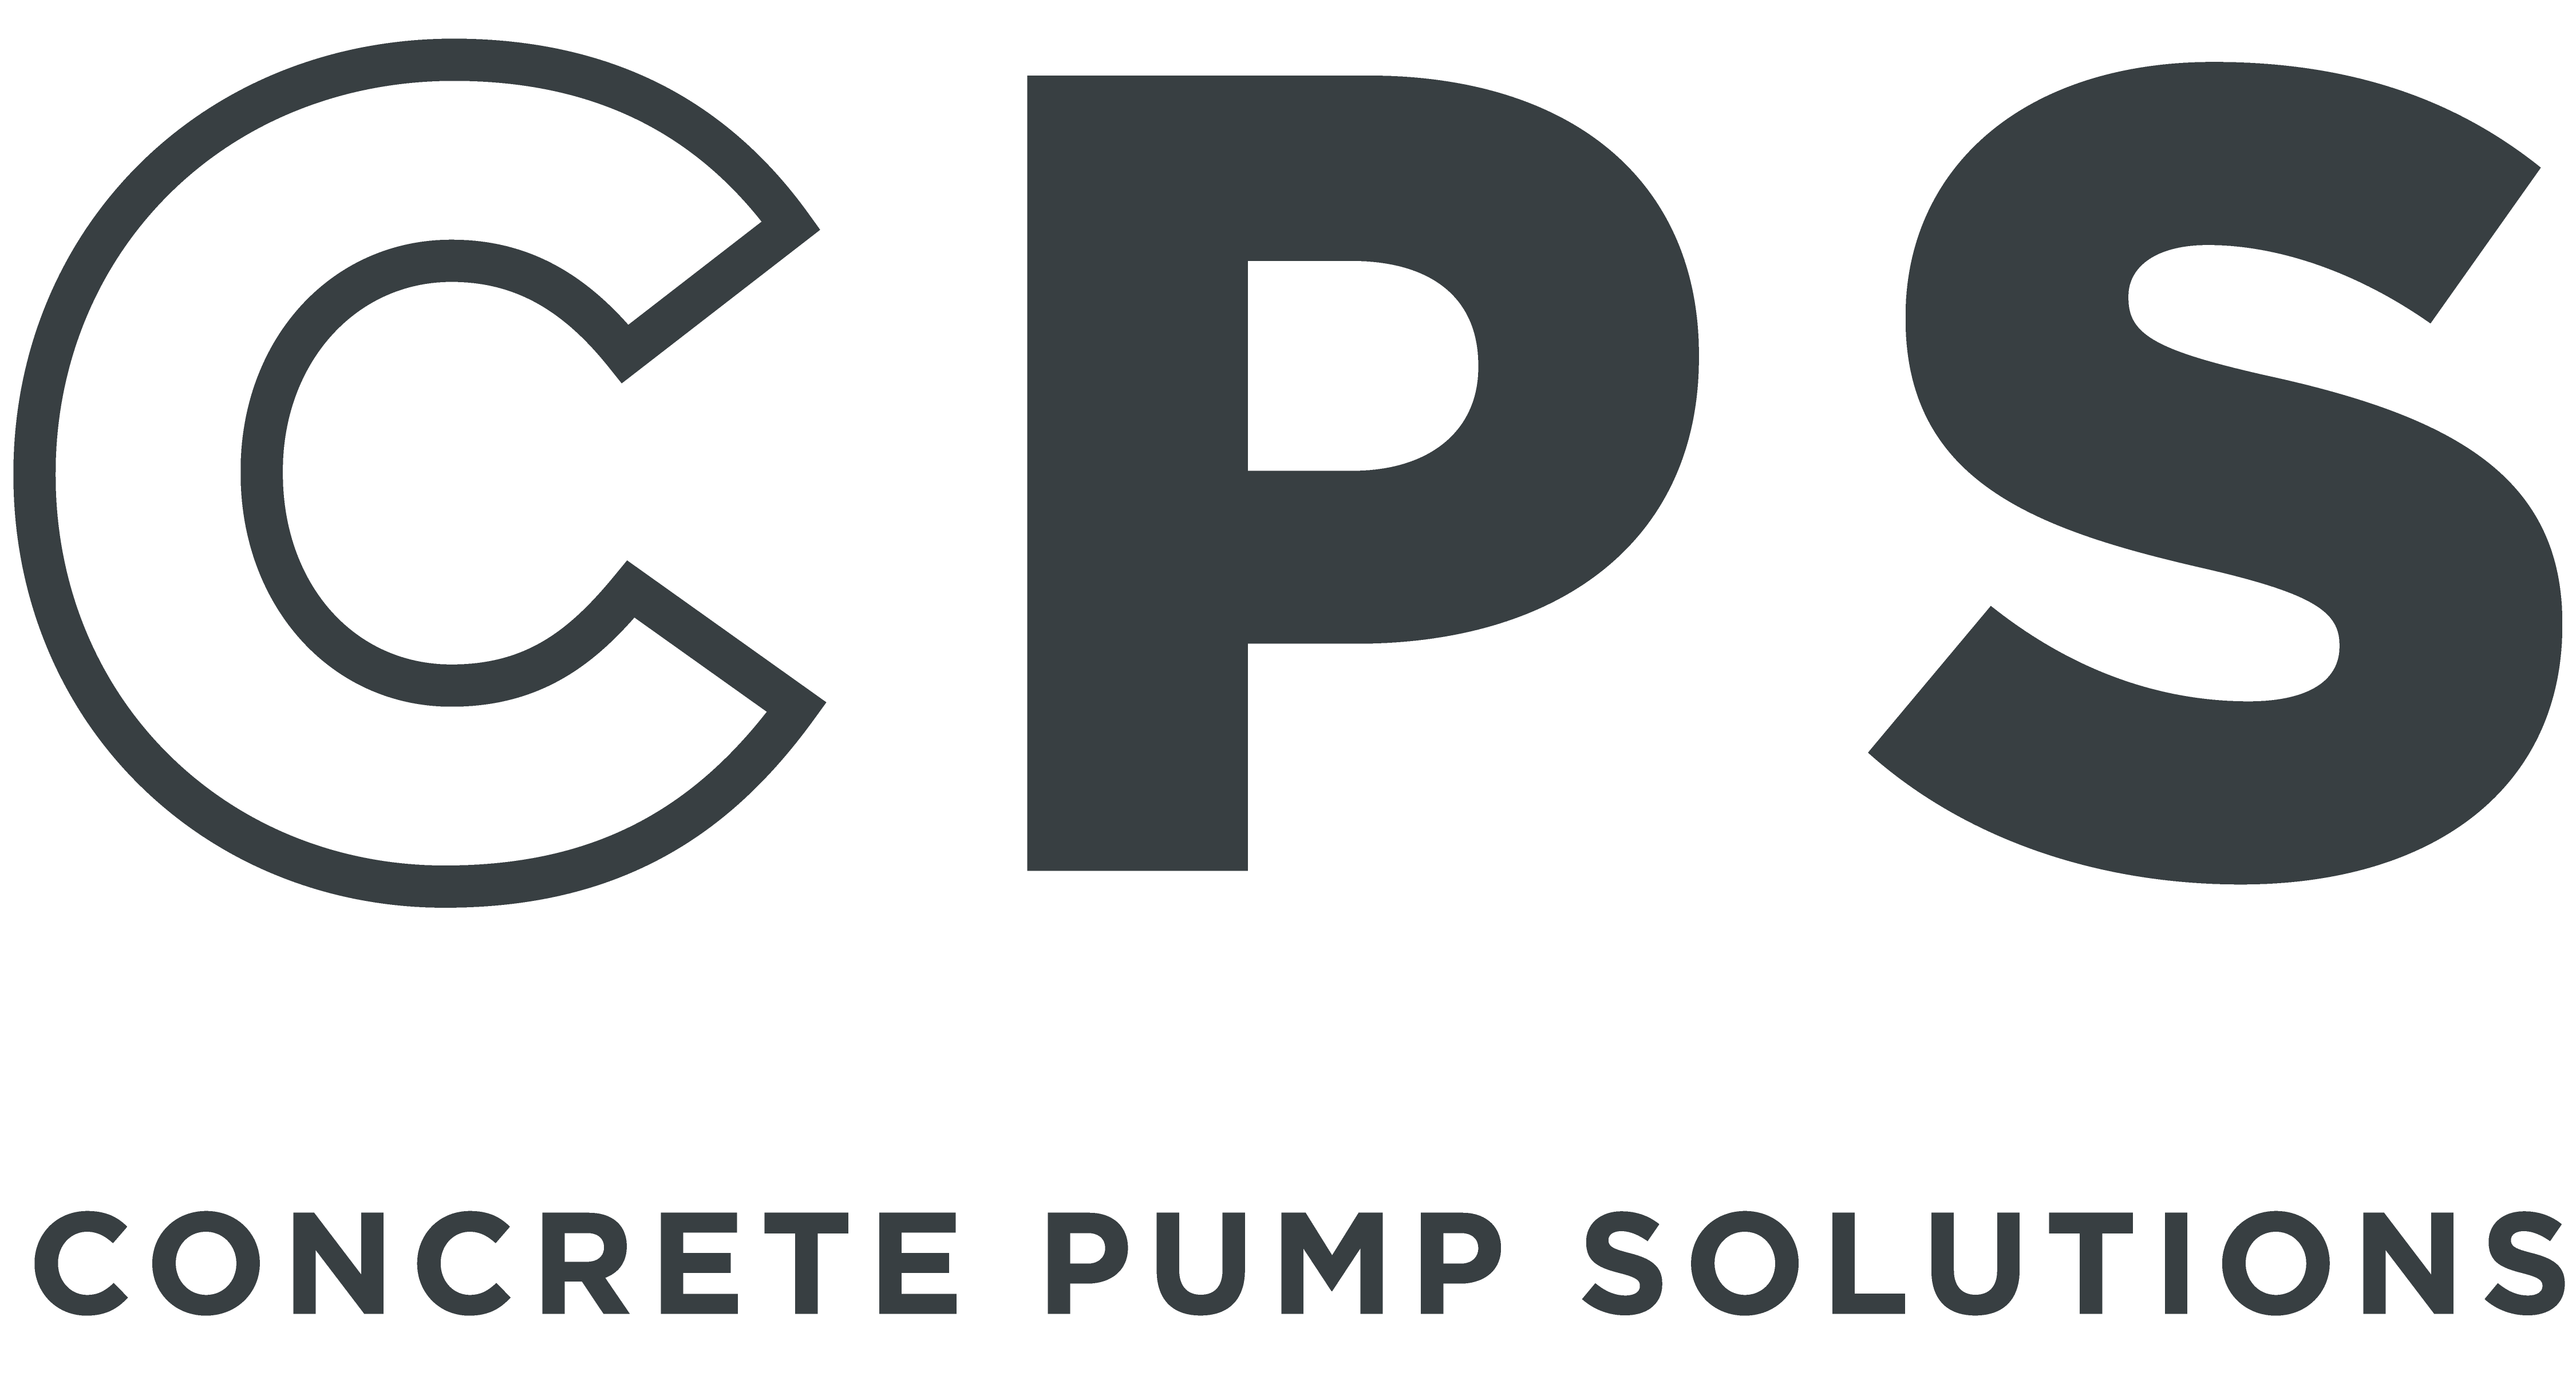 Concrete Pump Solutions